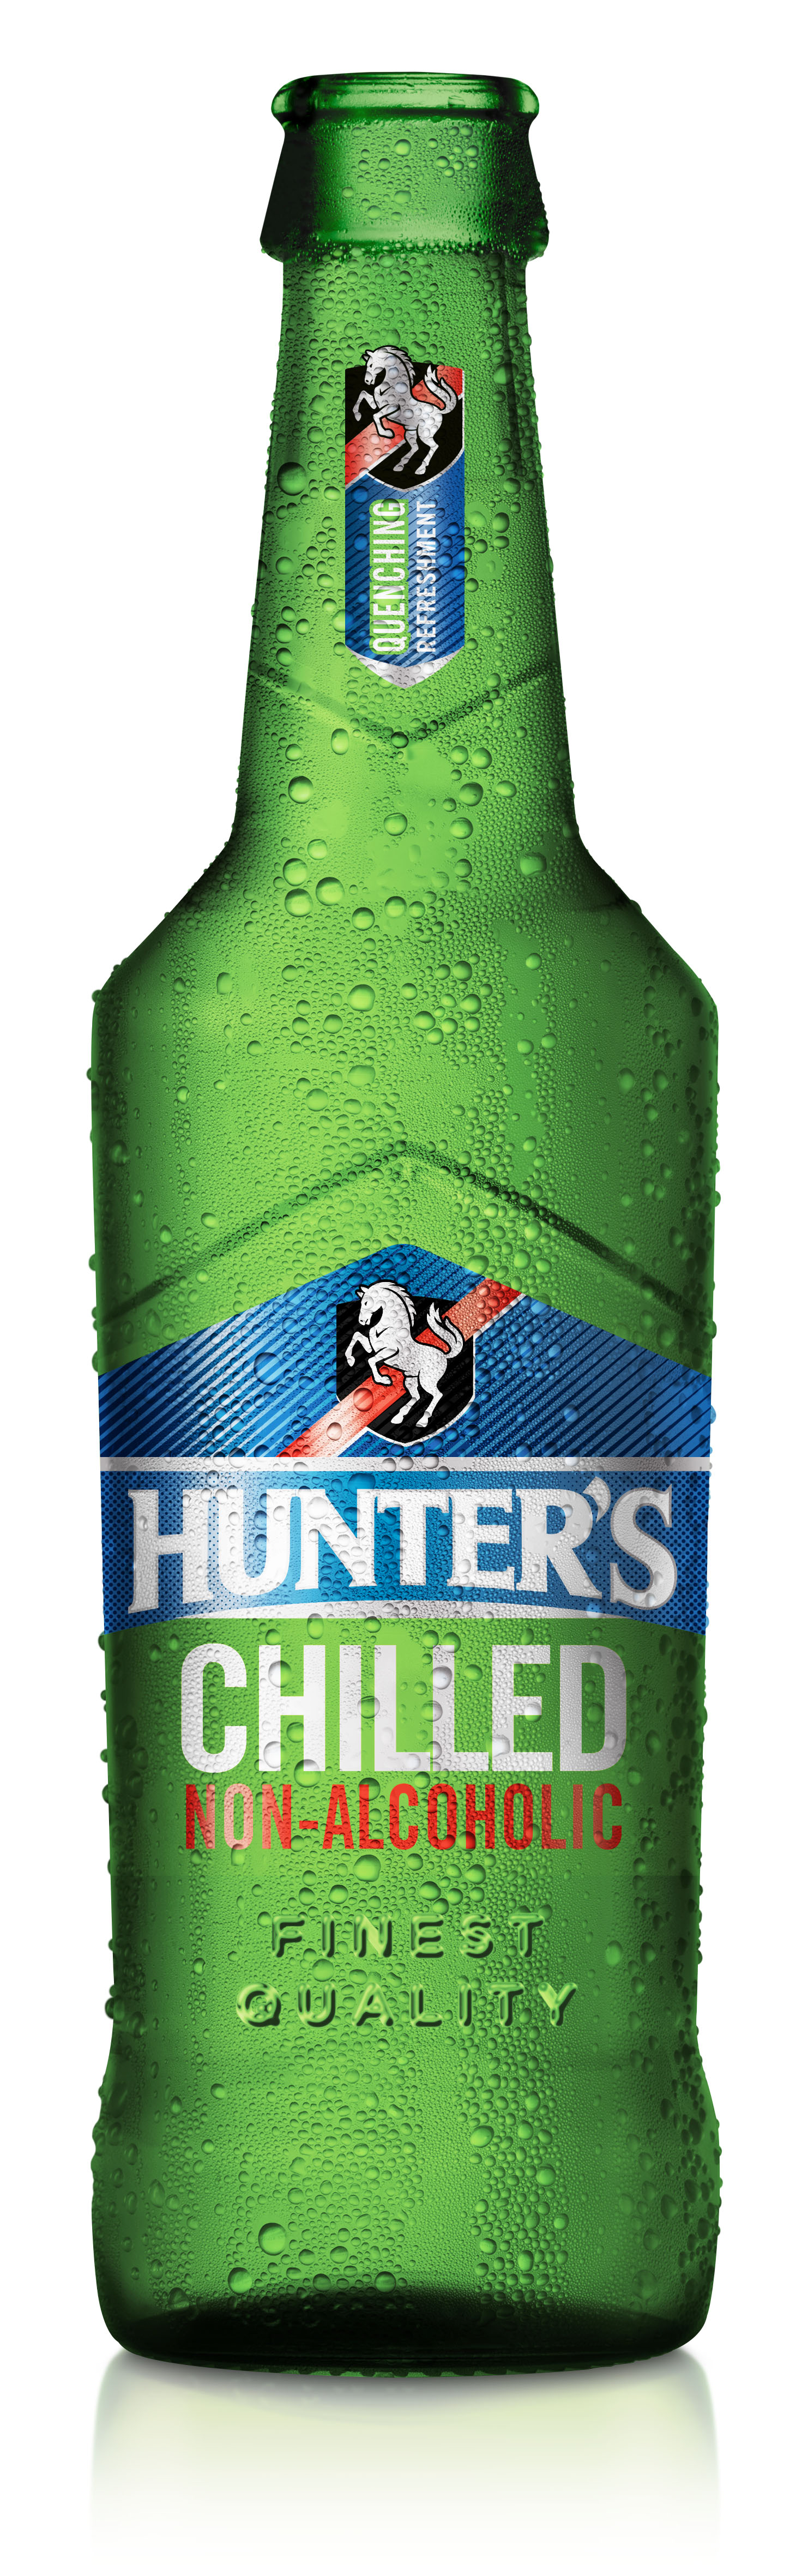 Hunter's Chilled